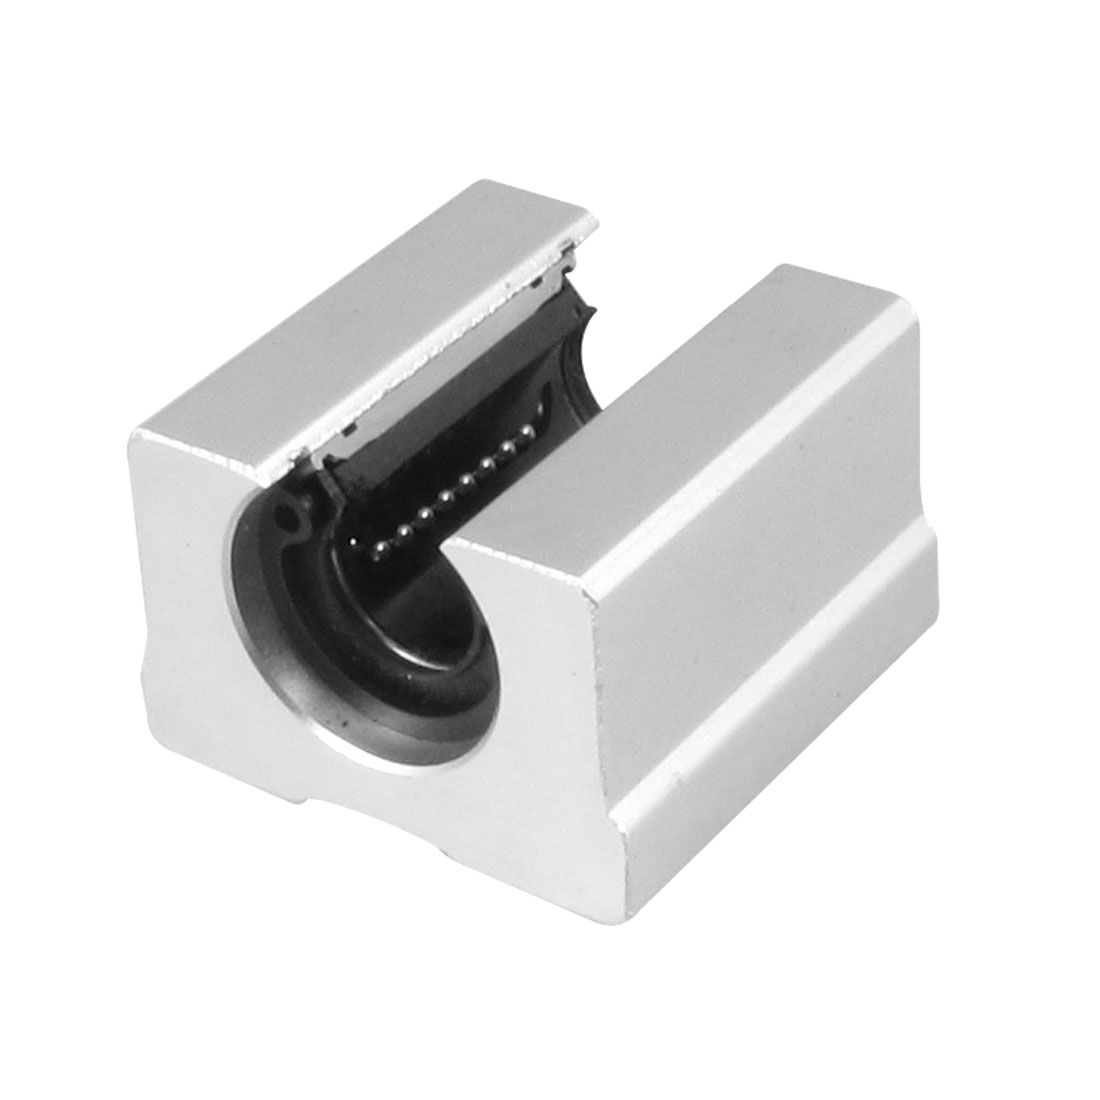 SBR12UU 12mm Linear Motion Ball Bearing Pillow Block